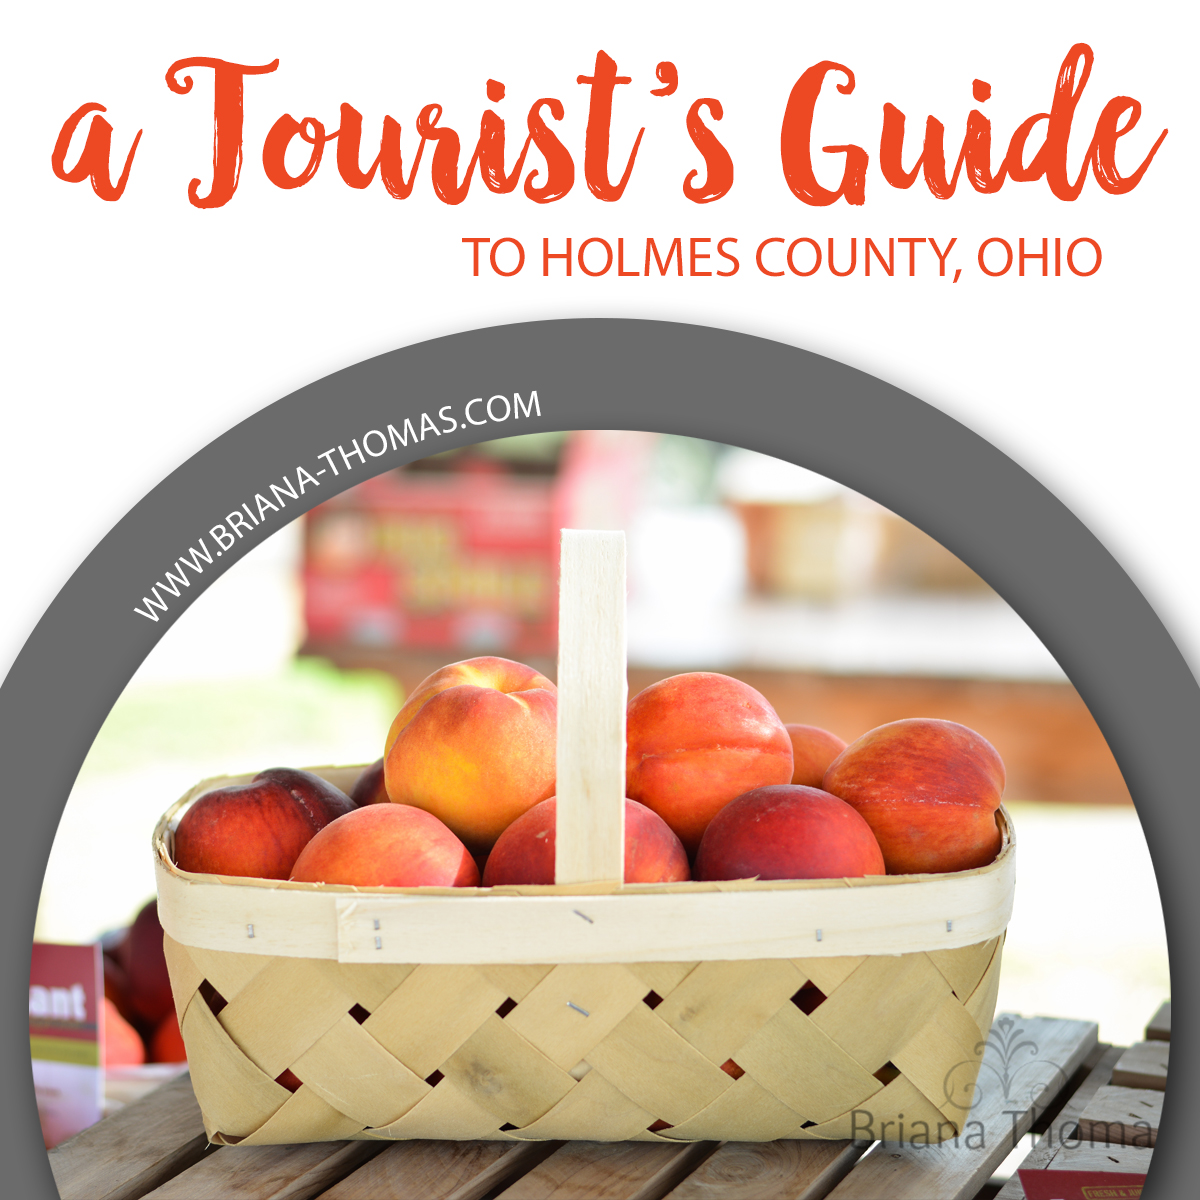 Check out today's post for a tourist's guide to Holmes County, Ohio! Restaurants with classic Amish-style food, discount grocery stores, fabric stores, etc.